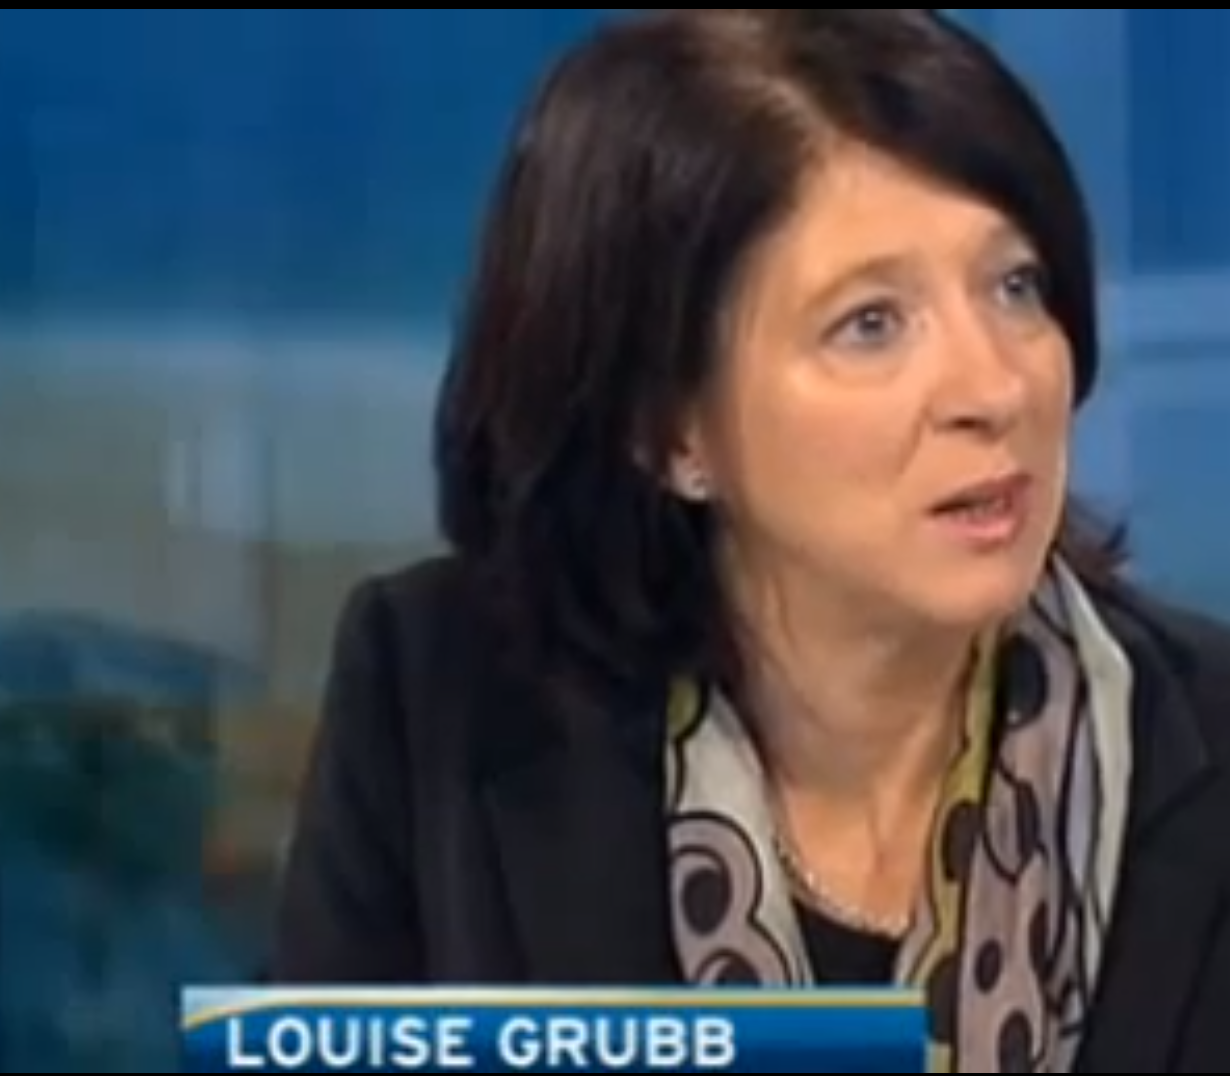 Louise Grubb, CEO of Q1 Scientific appeared on RTE's Morning Edition